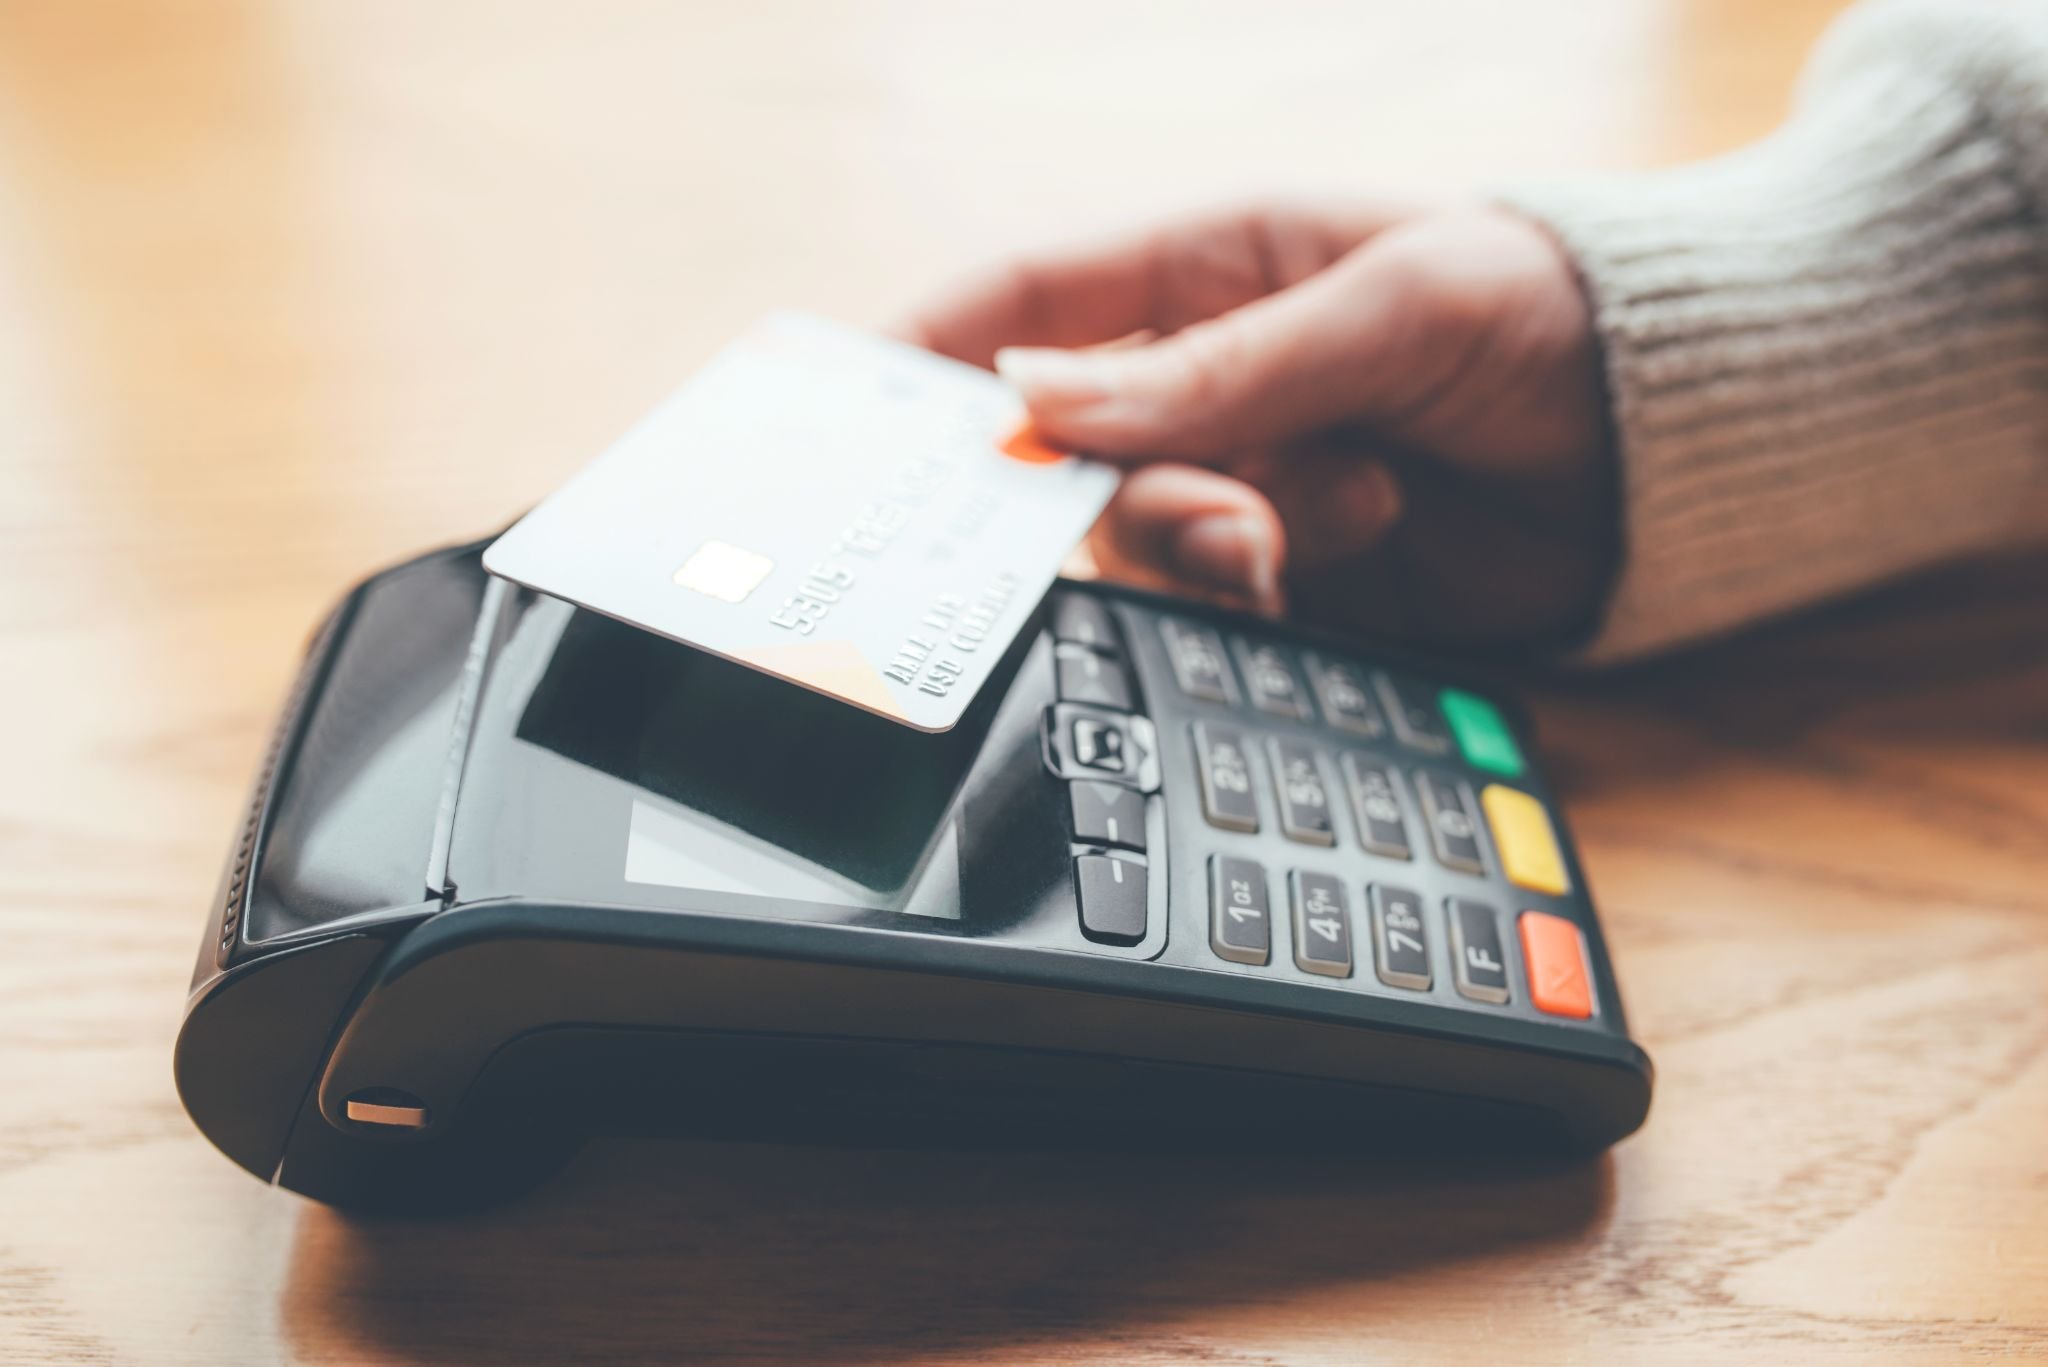 : A contactless POS system, one of the many merchant services for small businesses offered by Adept Payments.